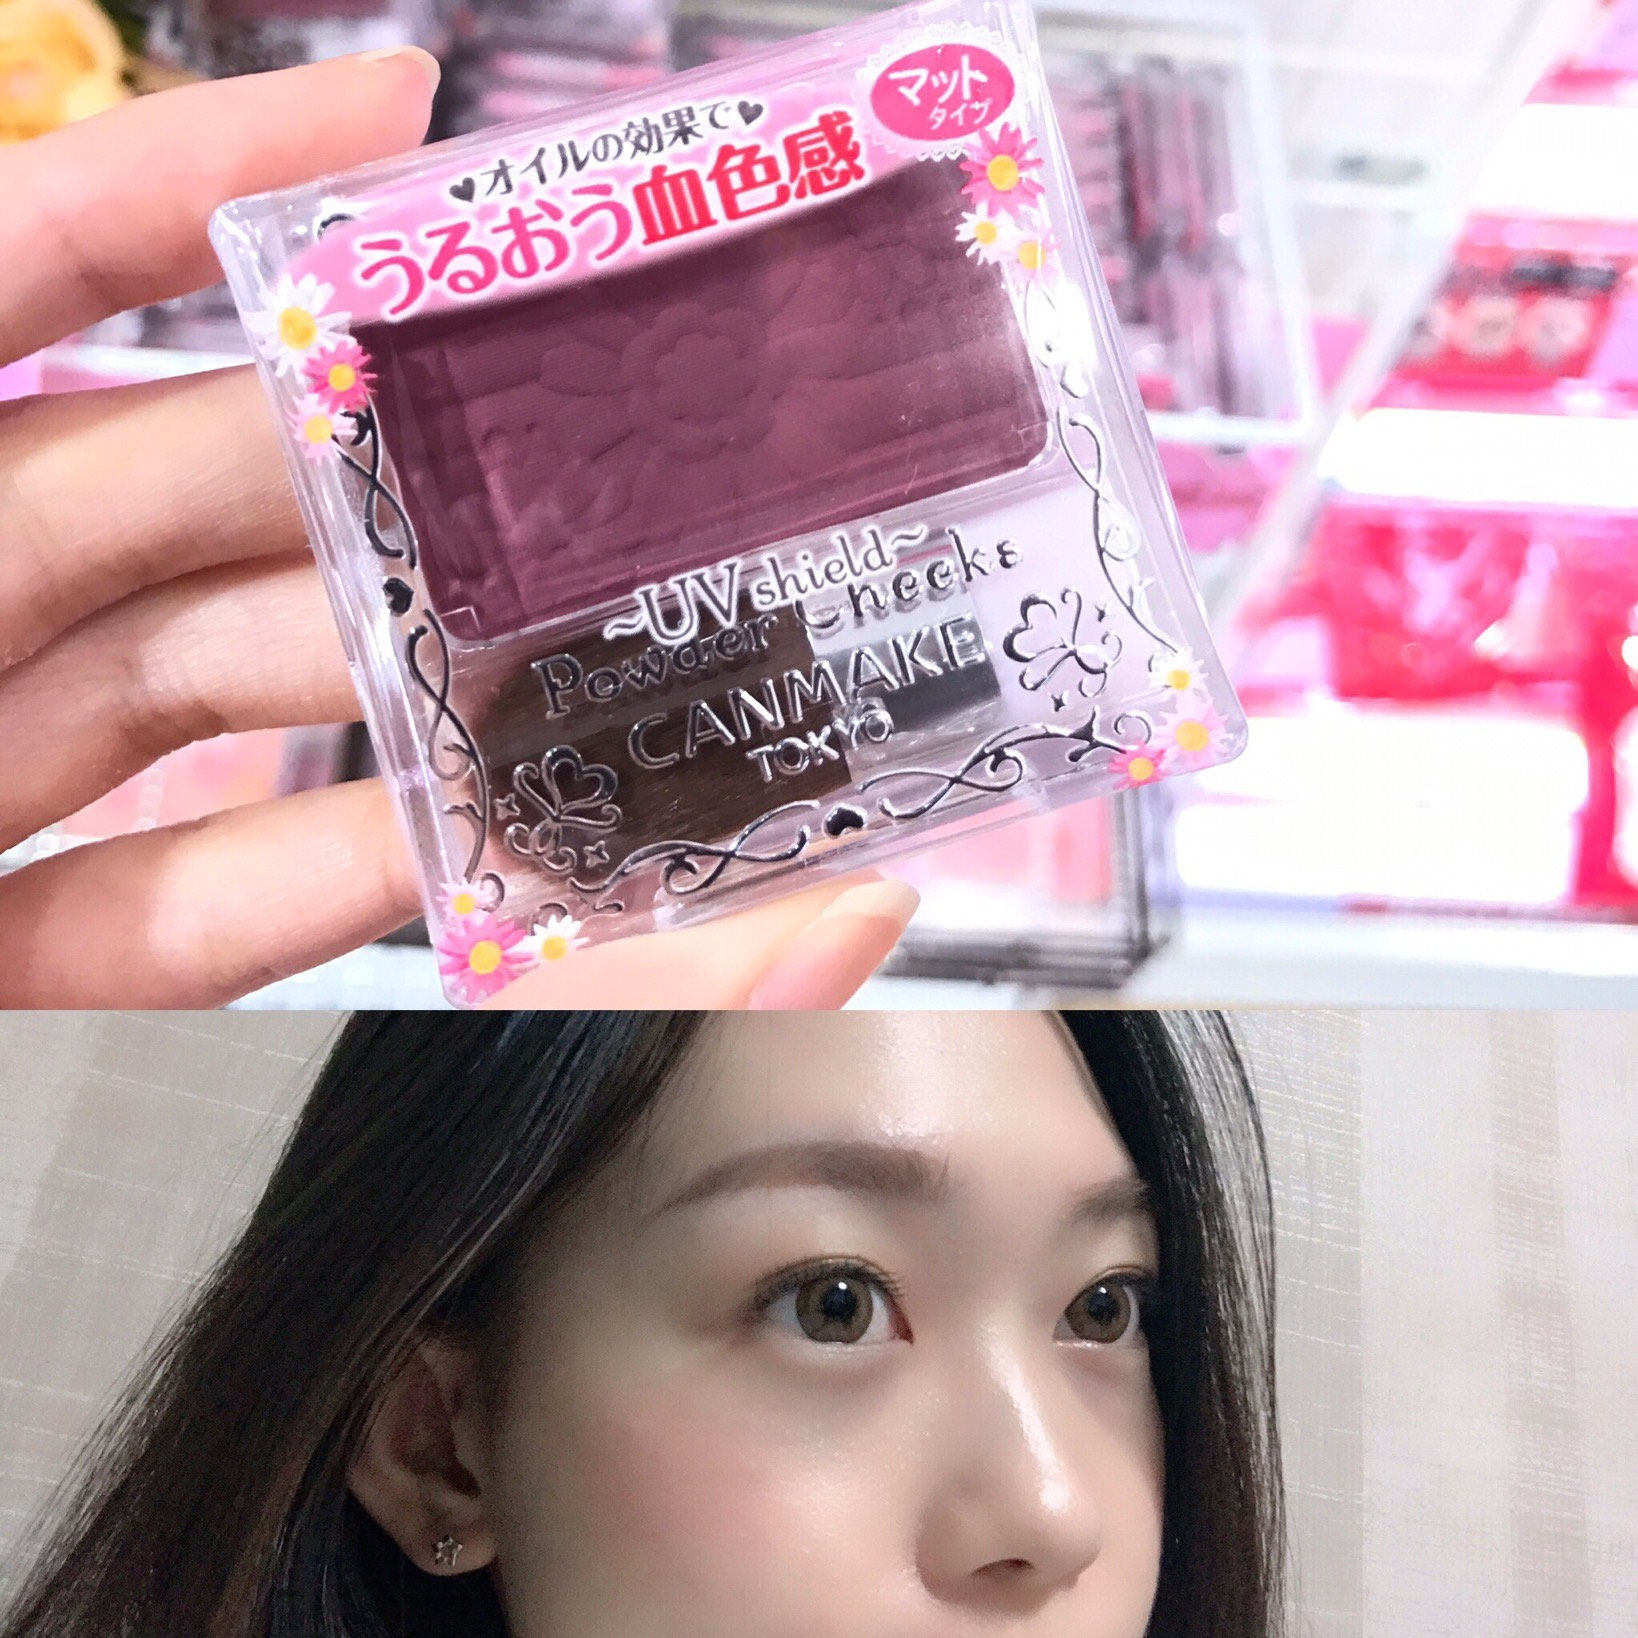 Japan s local canmake mine new color monochrome petals blush pw38 plum color